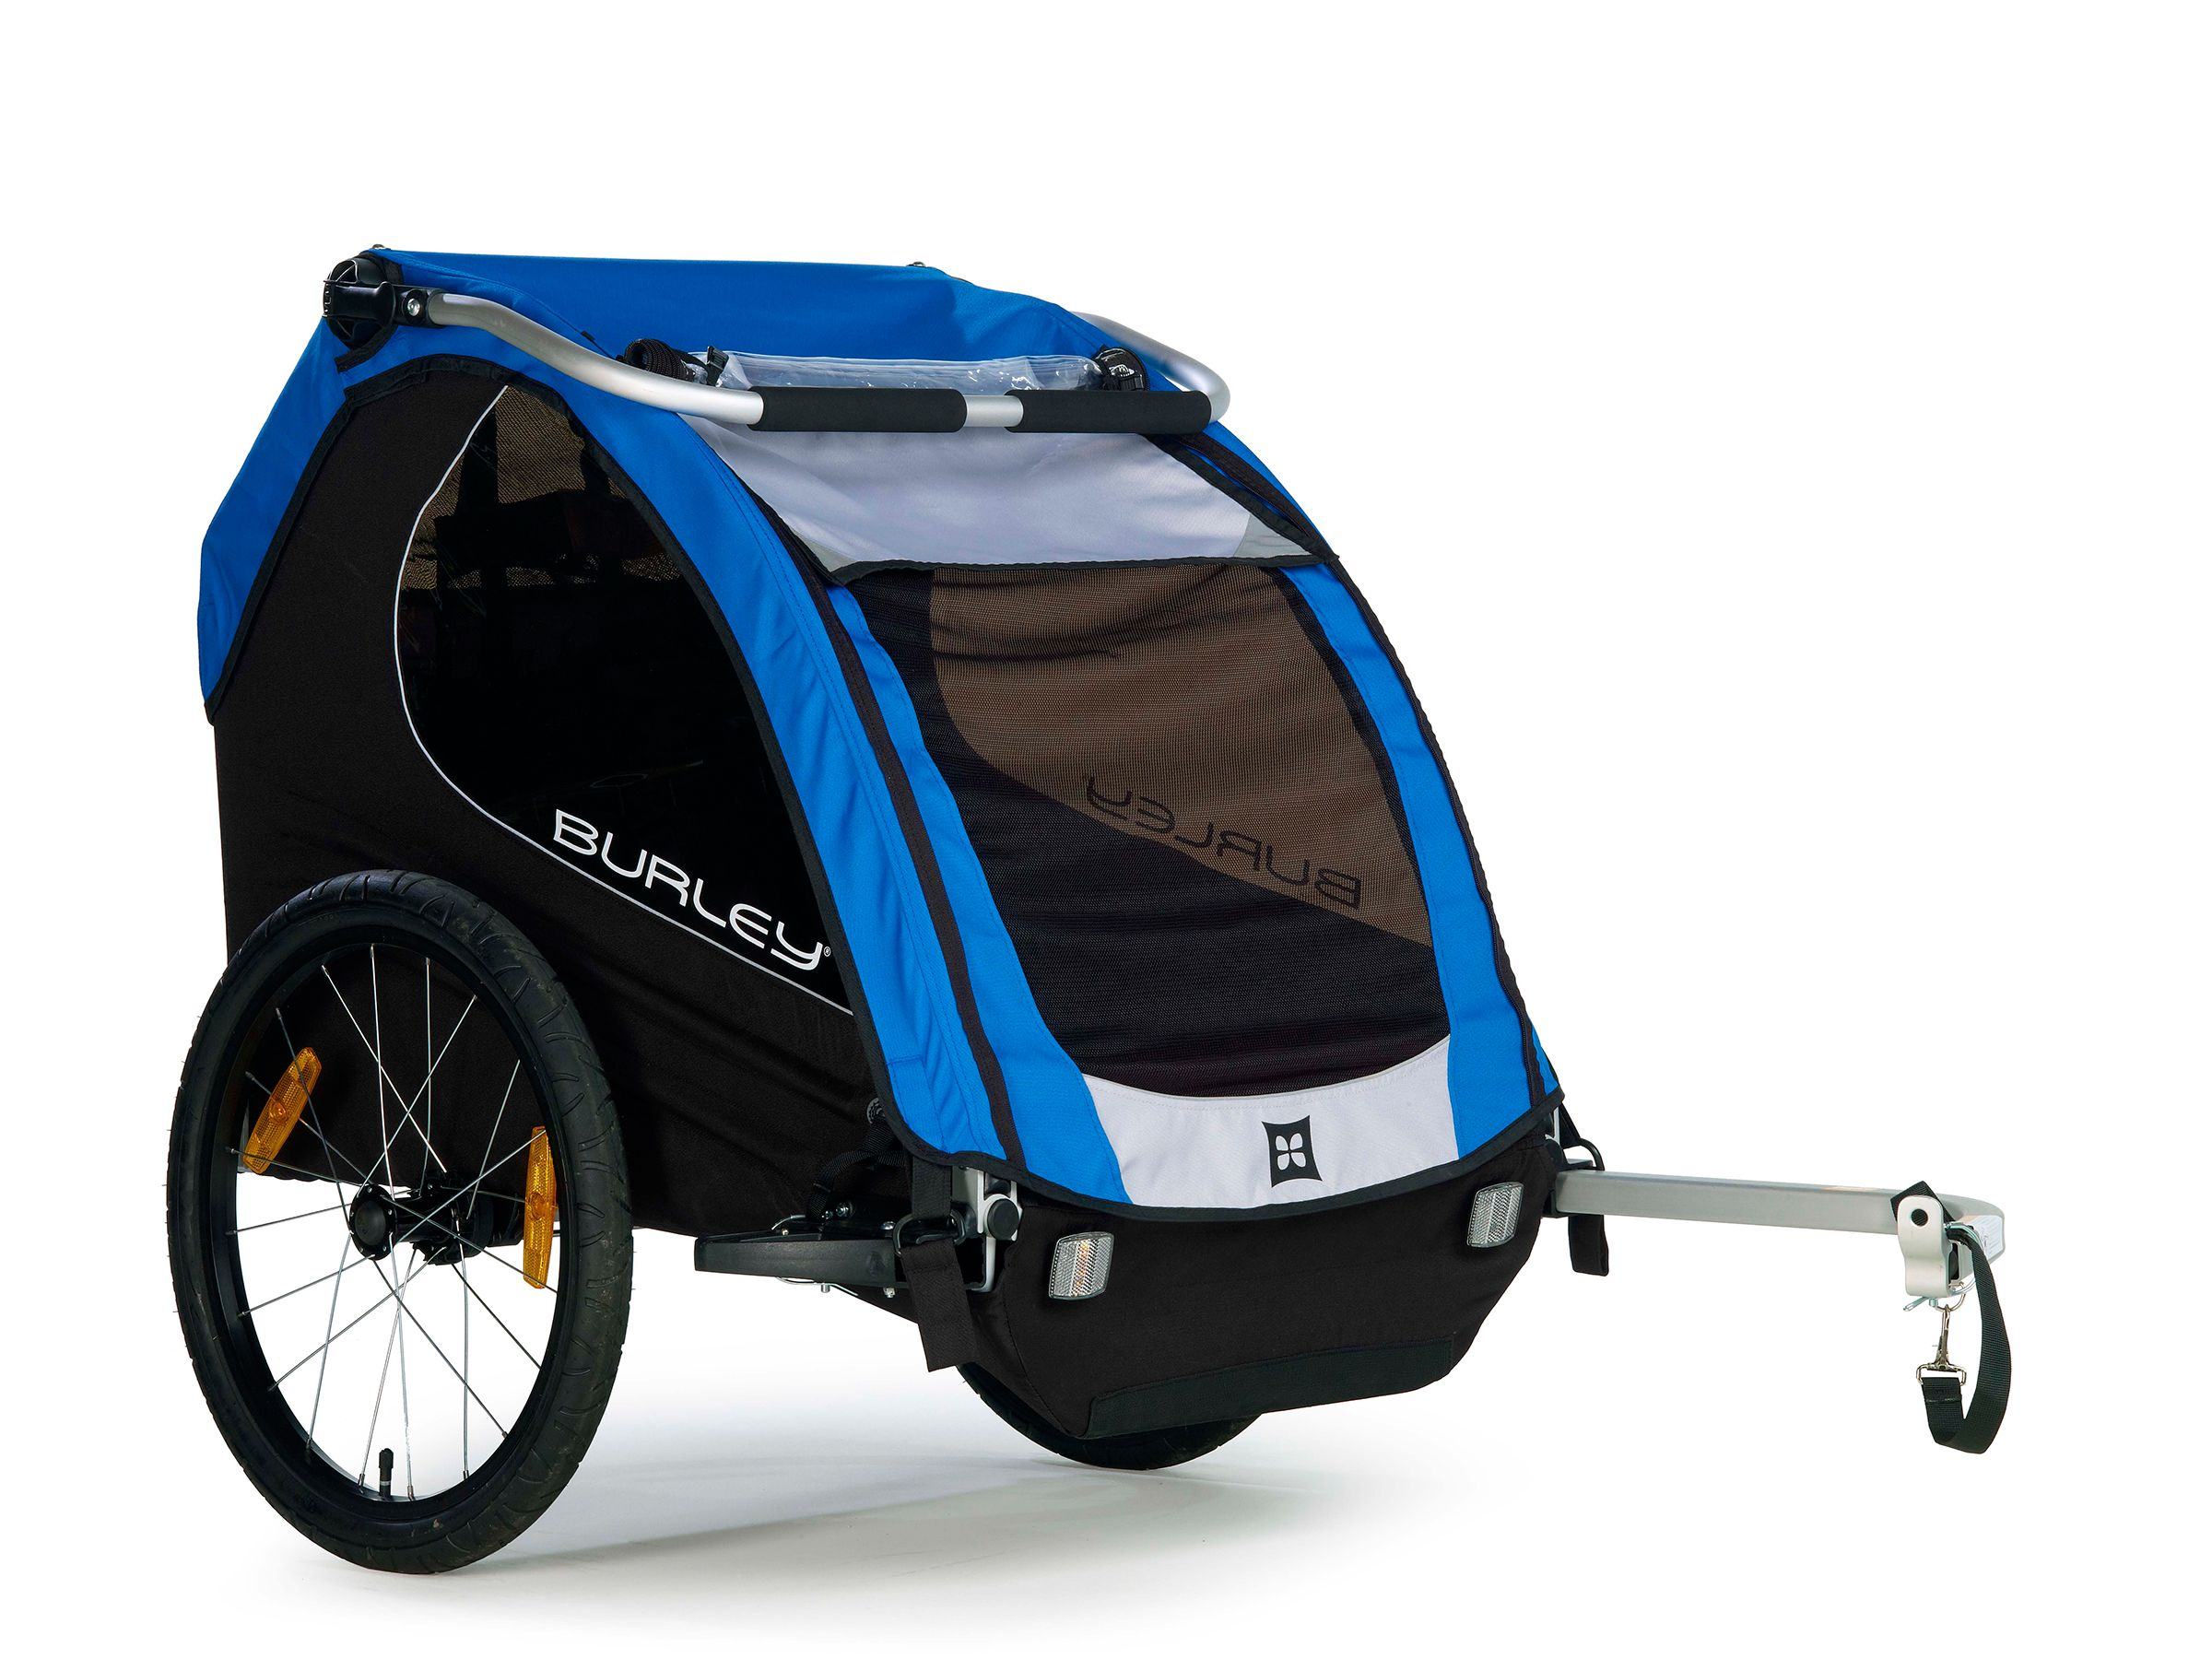 Burley Encore Child Trailer-Bicycle Child Carrier-100lb Capacity-Blue-New